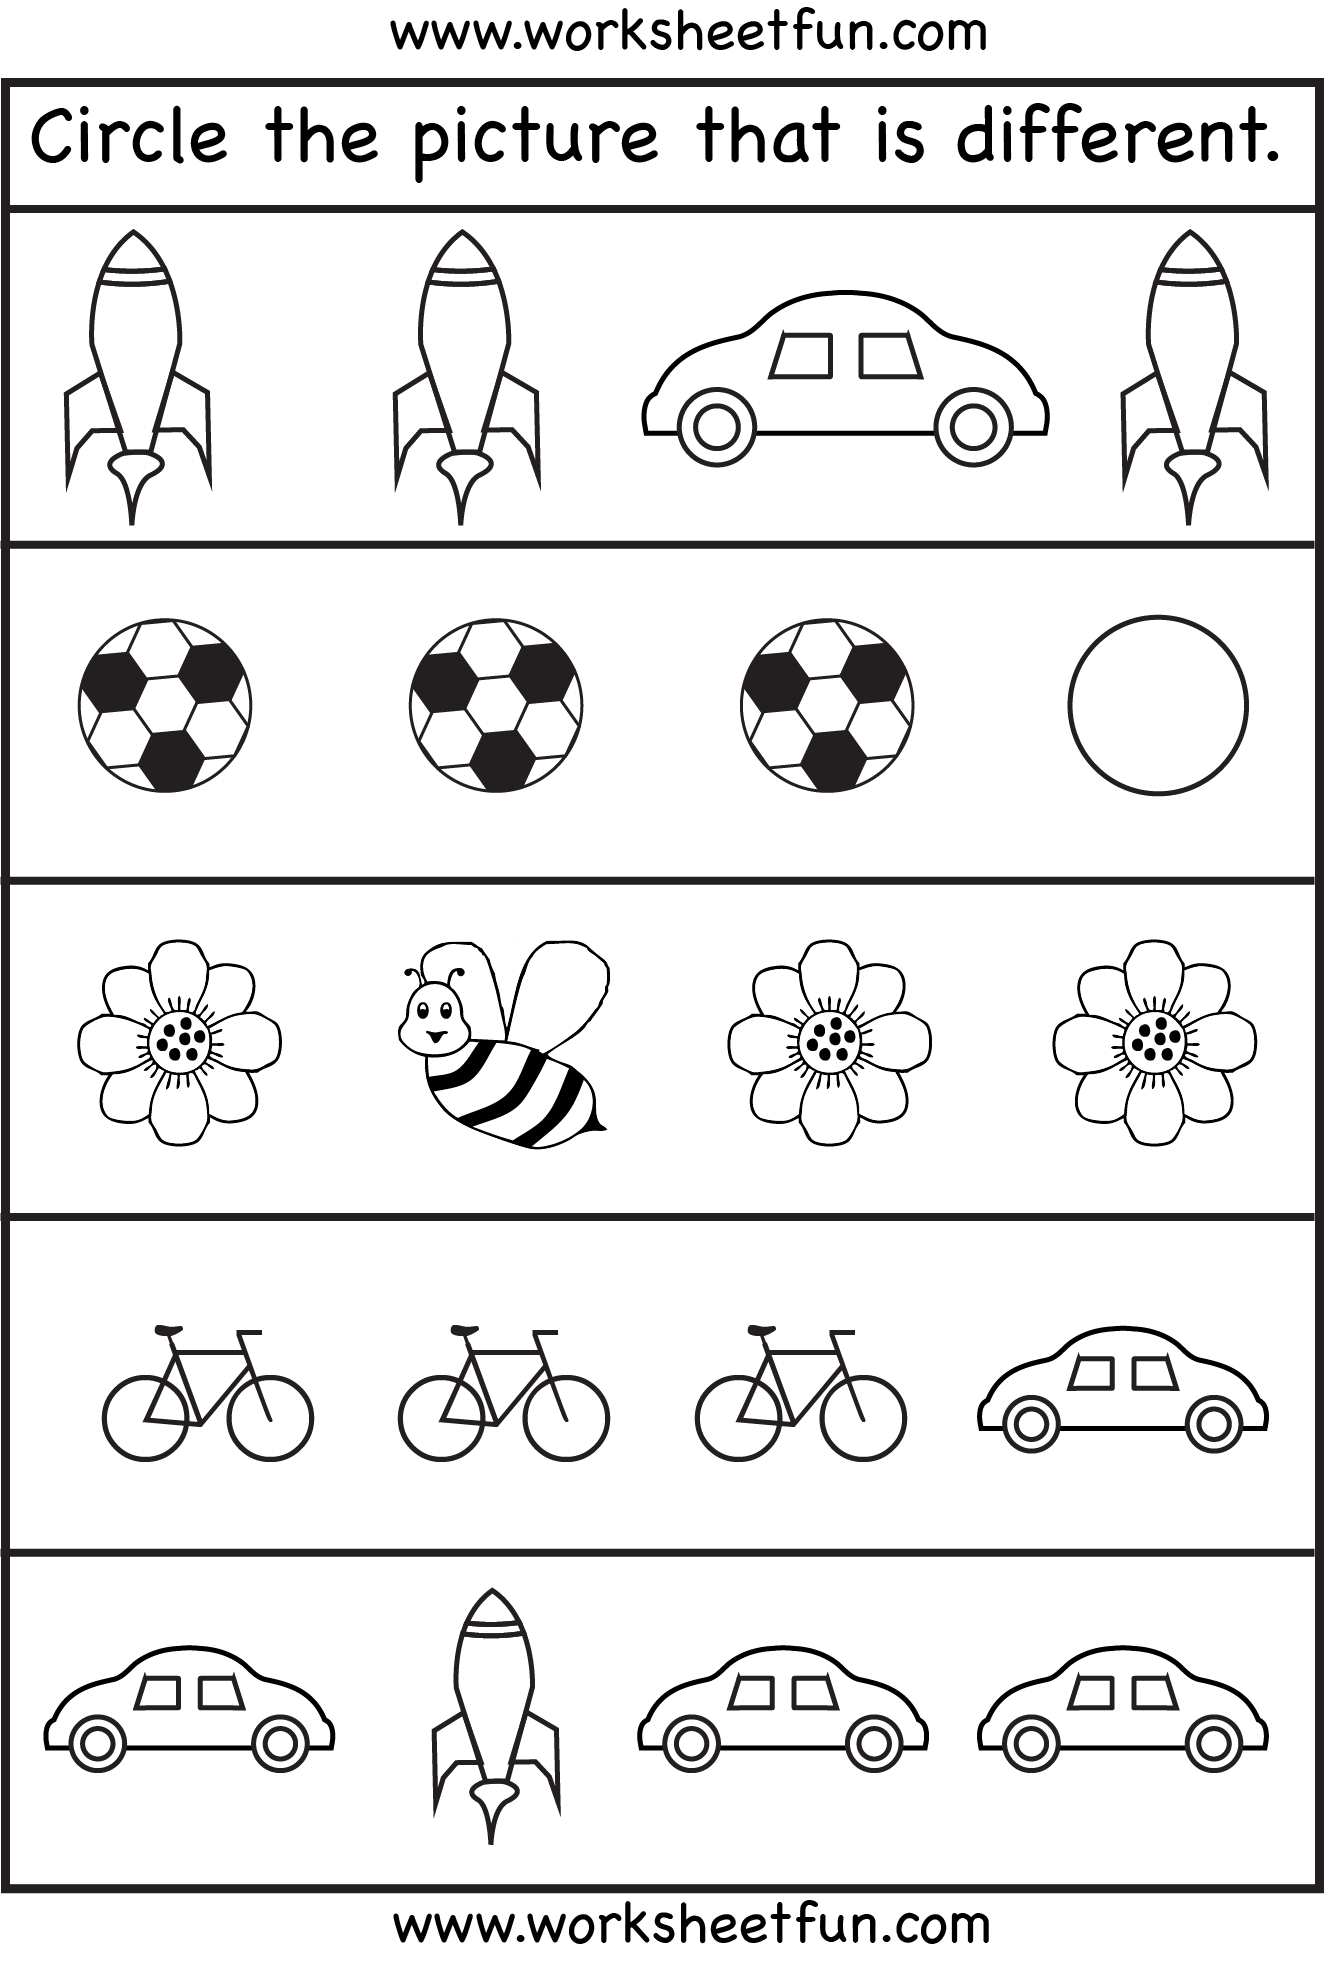 circle the picture that is differentand other concepts shapes math etc free printable preschool and kindergarten worksheets - Free Printables For Preschool